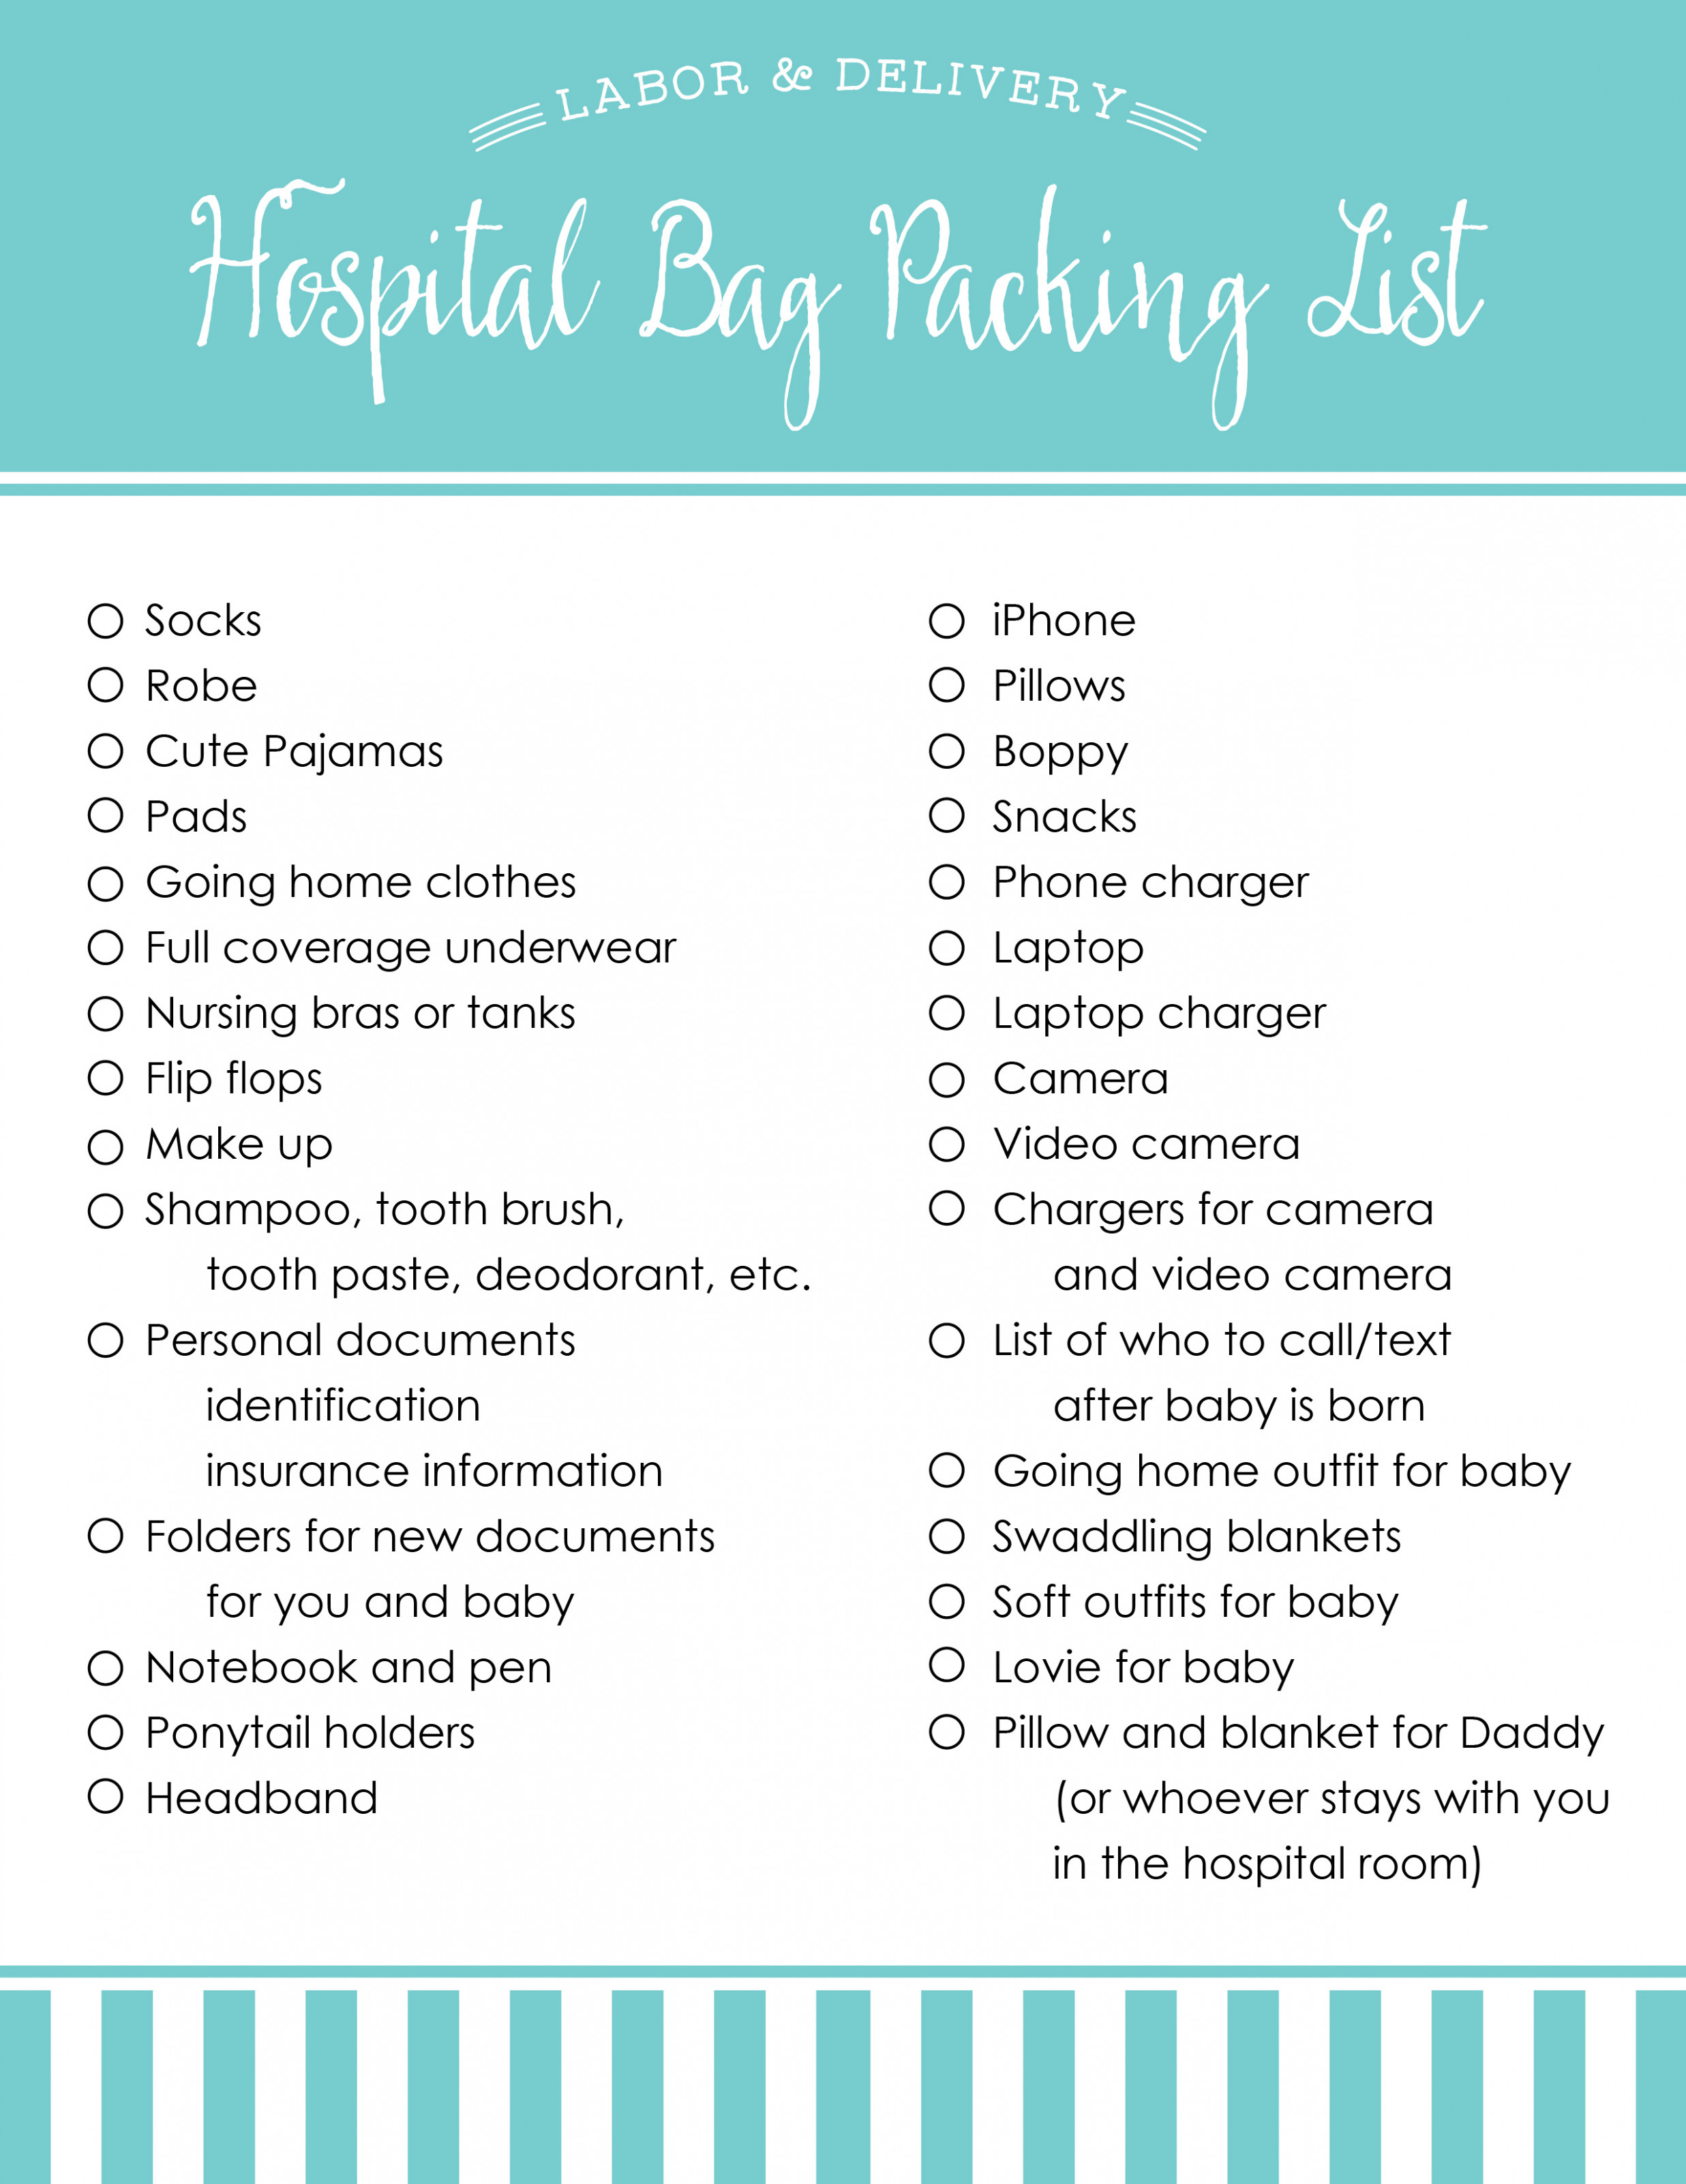 Hospital Bag Packing List for Mom & Baby | Blue-Eyed Bride ...